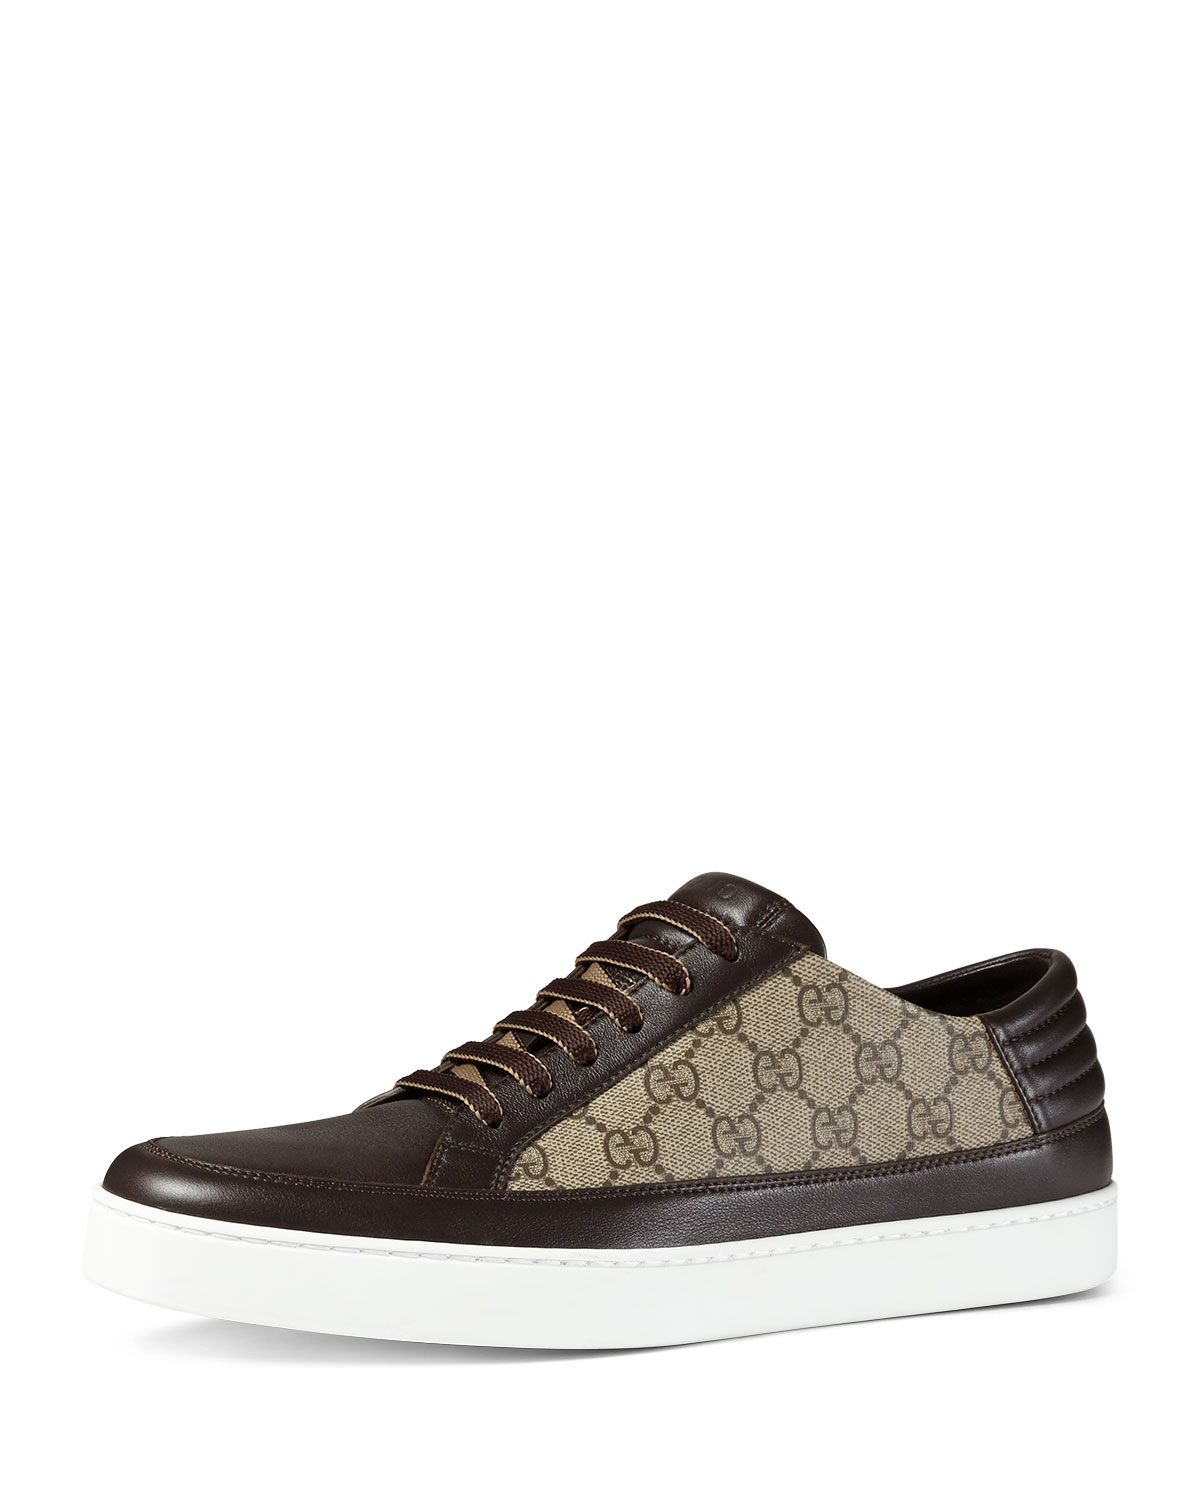 d7208a0d99a Gucci GG Supreme Leather Low-Top Sneaker